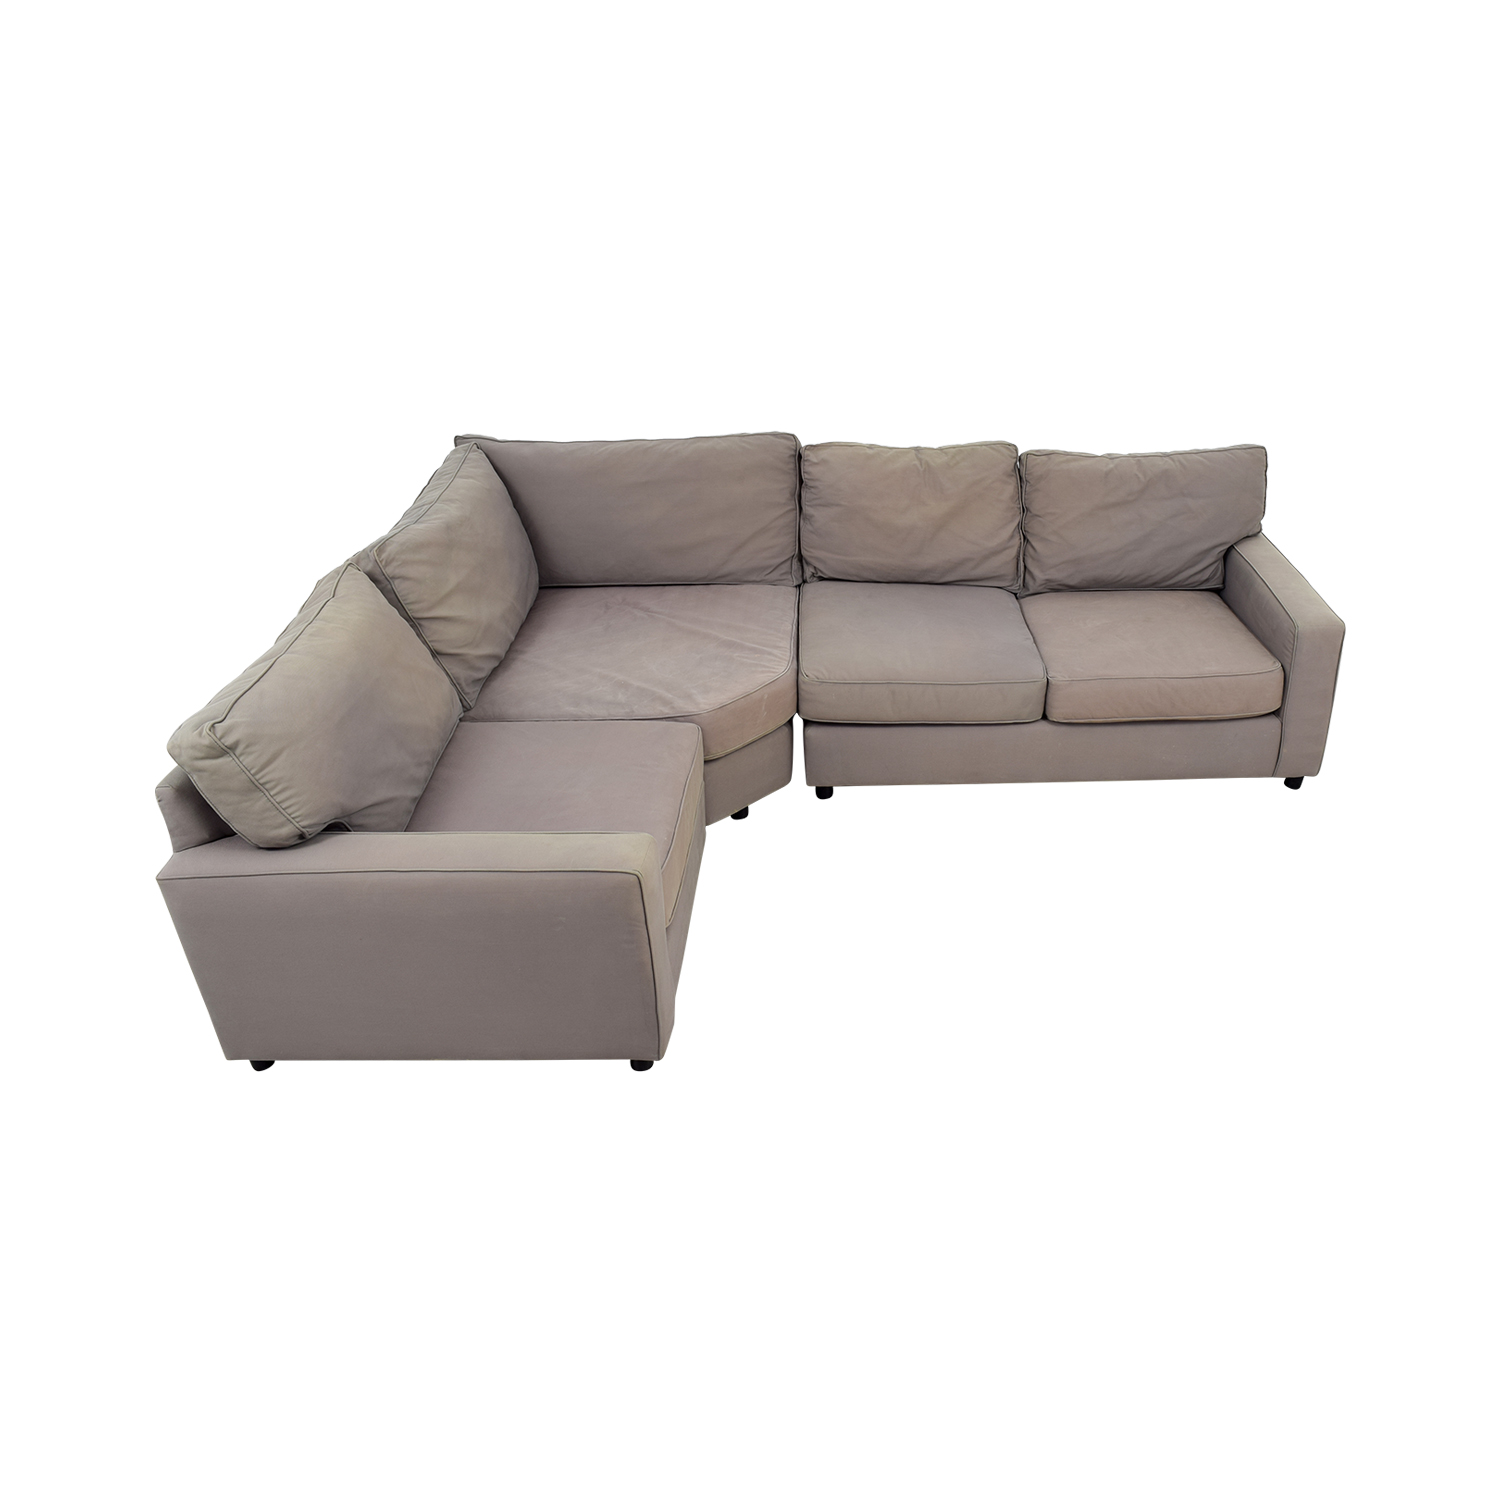 dimensions vaughn beautiful of sectional within cheap living fabric photos room sofas furniture vaughan sectionals sofa apartment